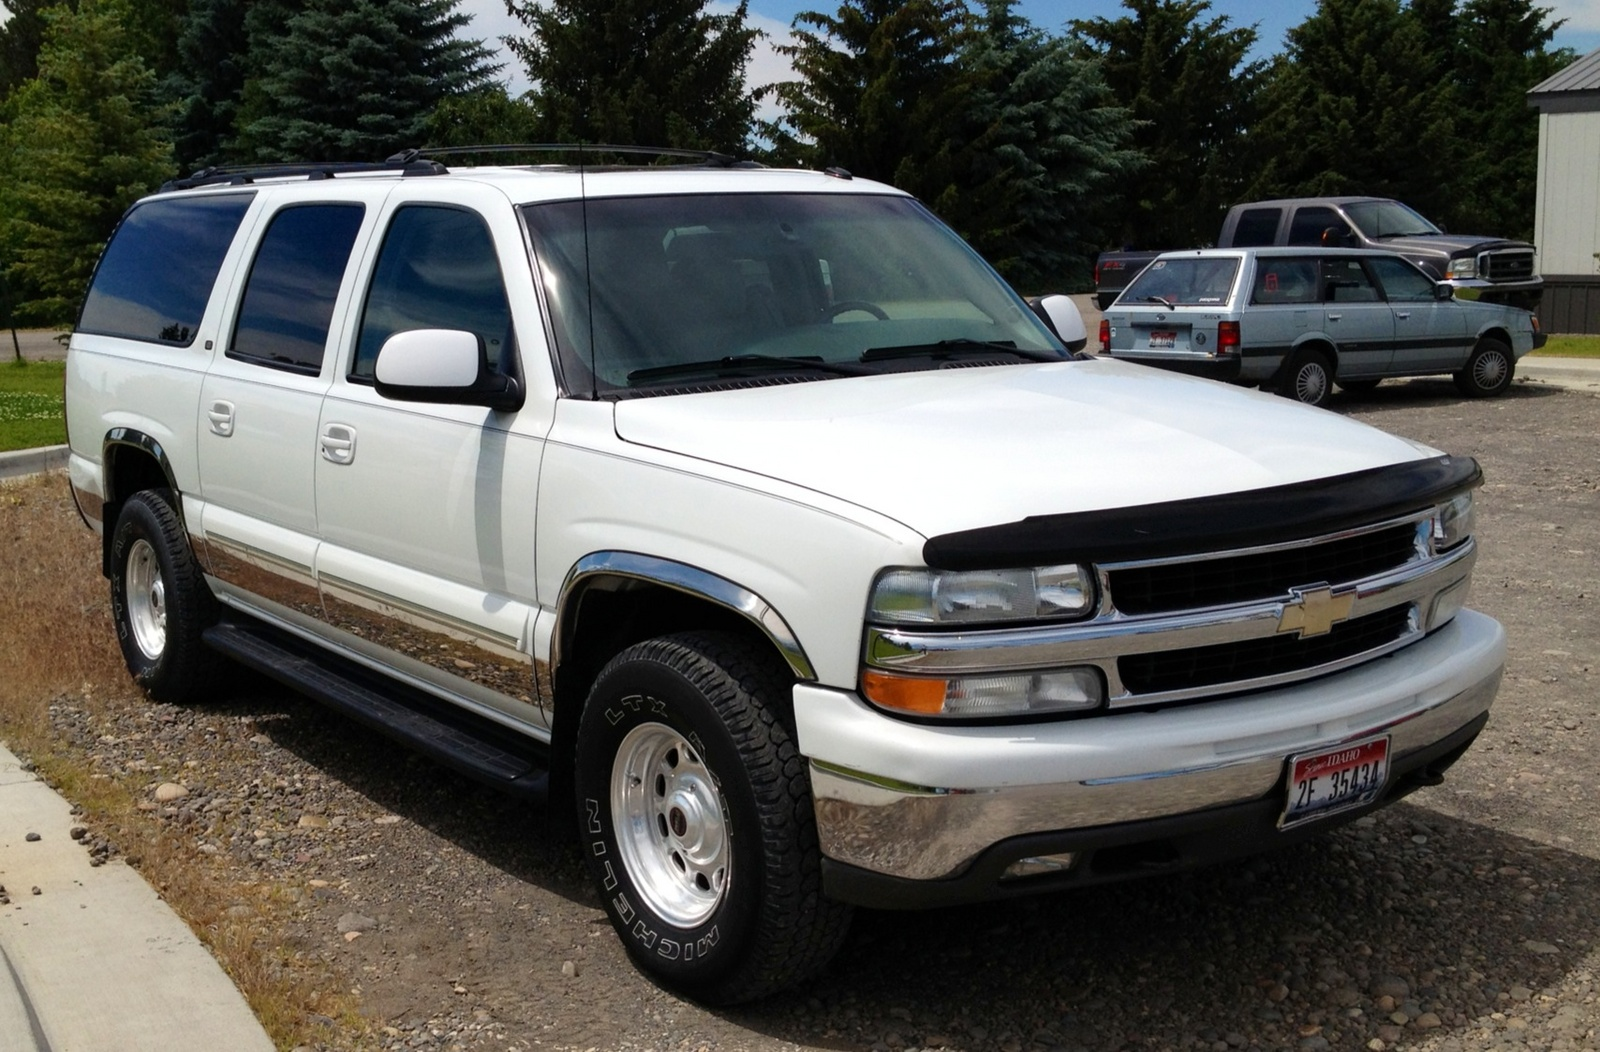 2003 Chevy Tahoe Lt 4x4 Suv Cars Trucks By Owner 2017 2018 2019 Ford Price Release Date